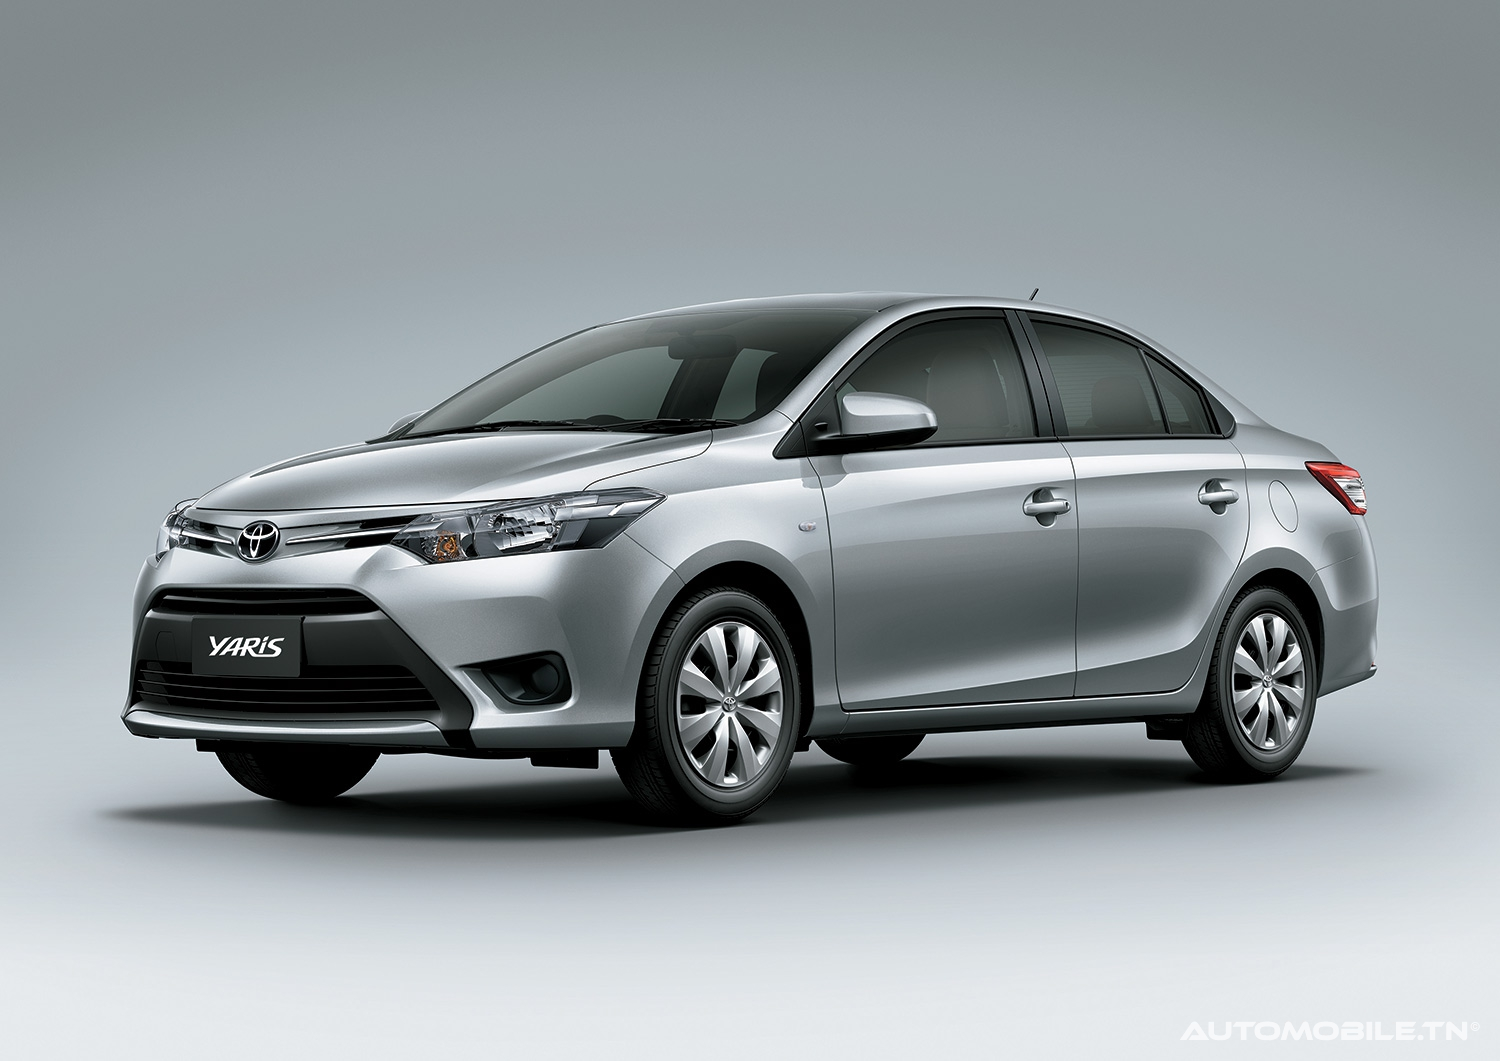 2015 Toyota Yaris Sedan Xp9 Pictures Information And Specs